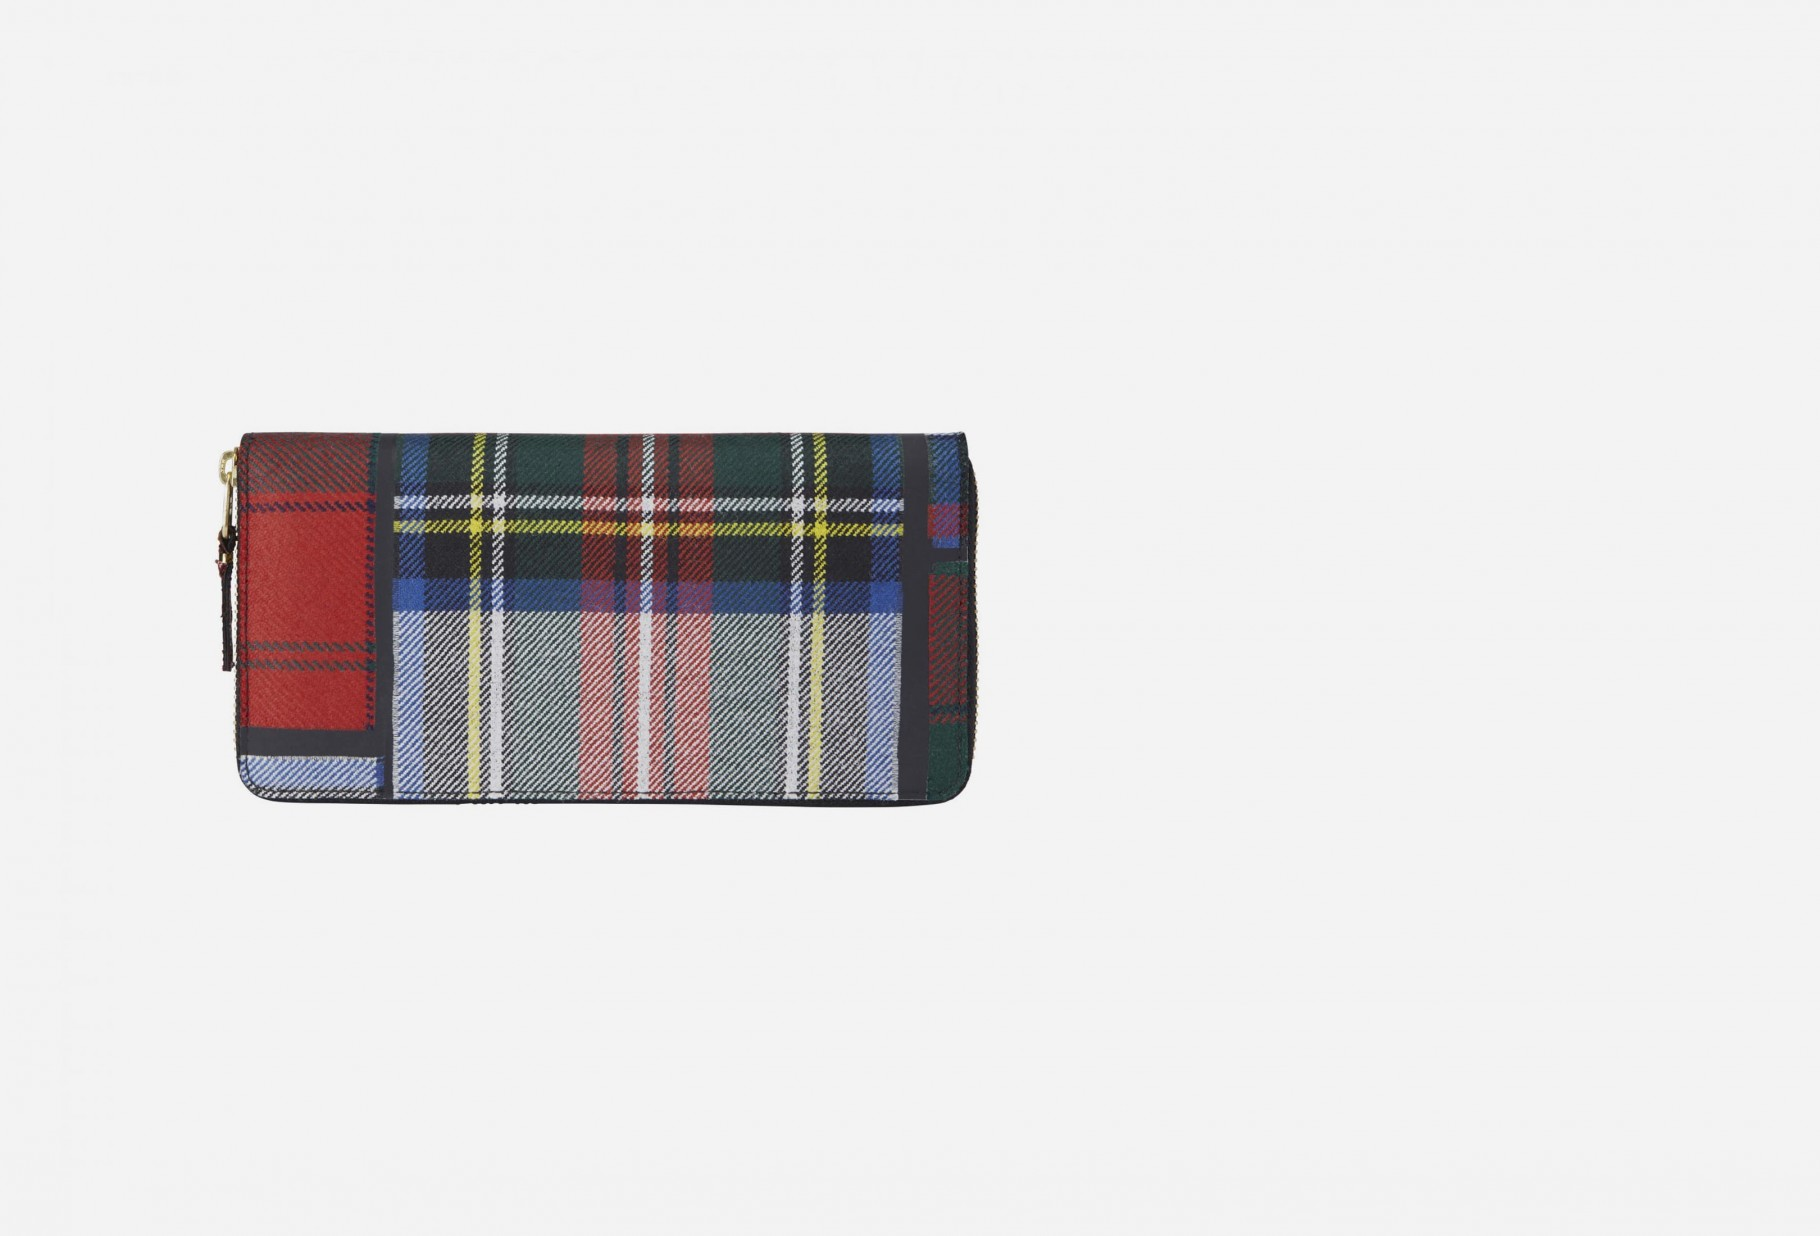 CDG WALLETS FOR WOMAN / Cdg tartan patchwork sa0110tp Red